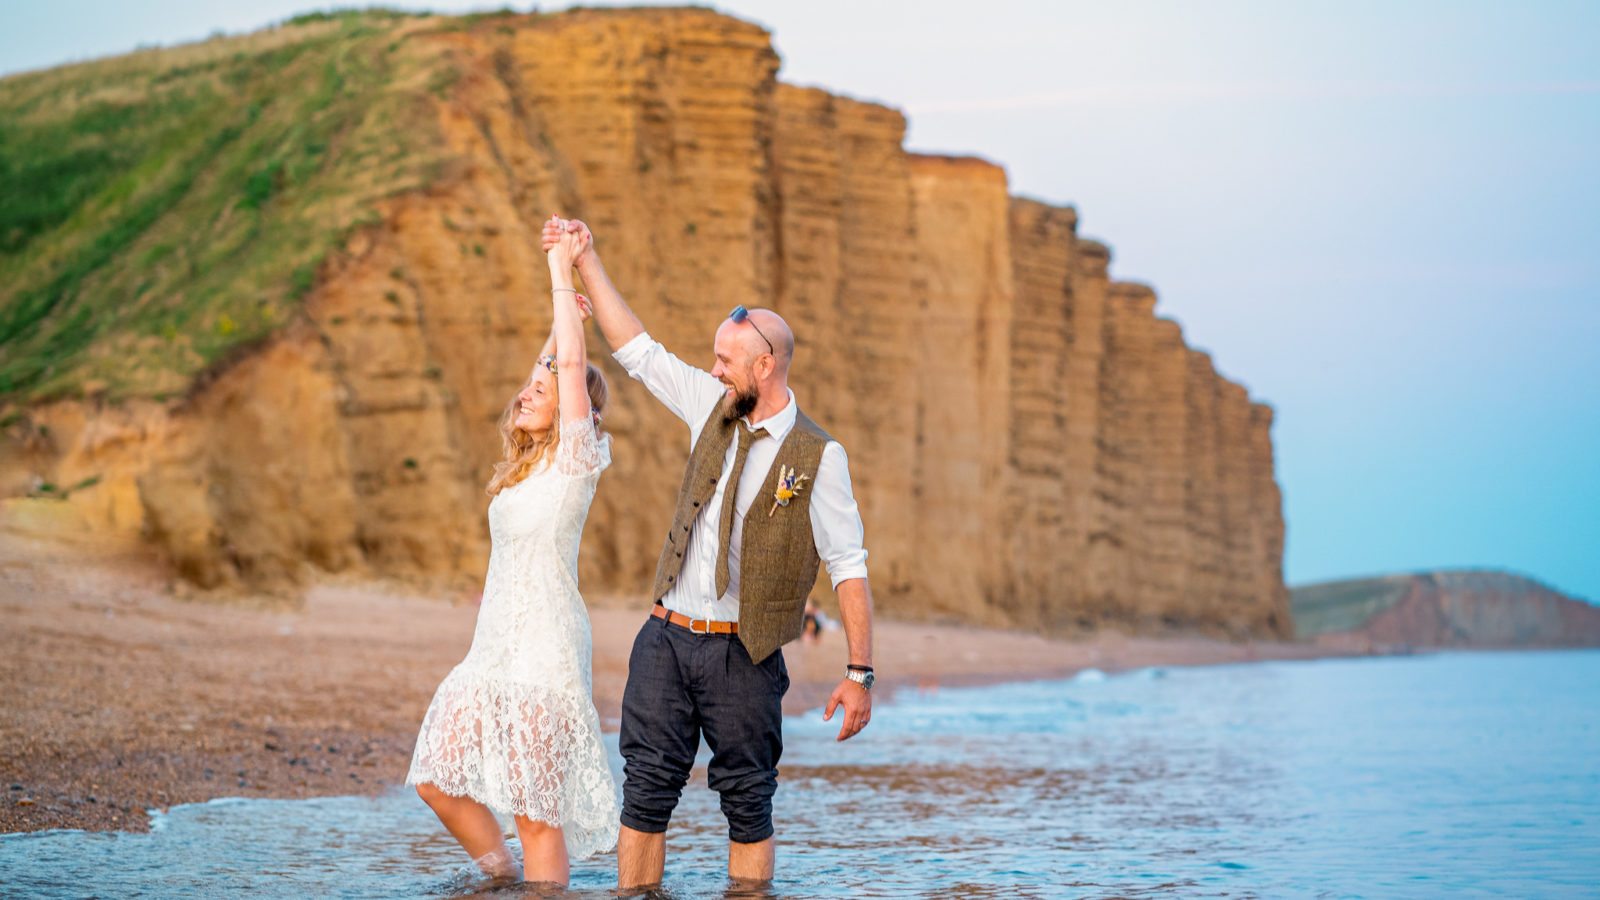 A bride and groom dancing in the sea with the cliffs of West Bay in the background in Dorset.